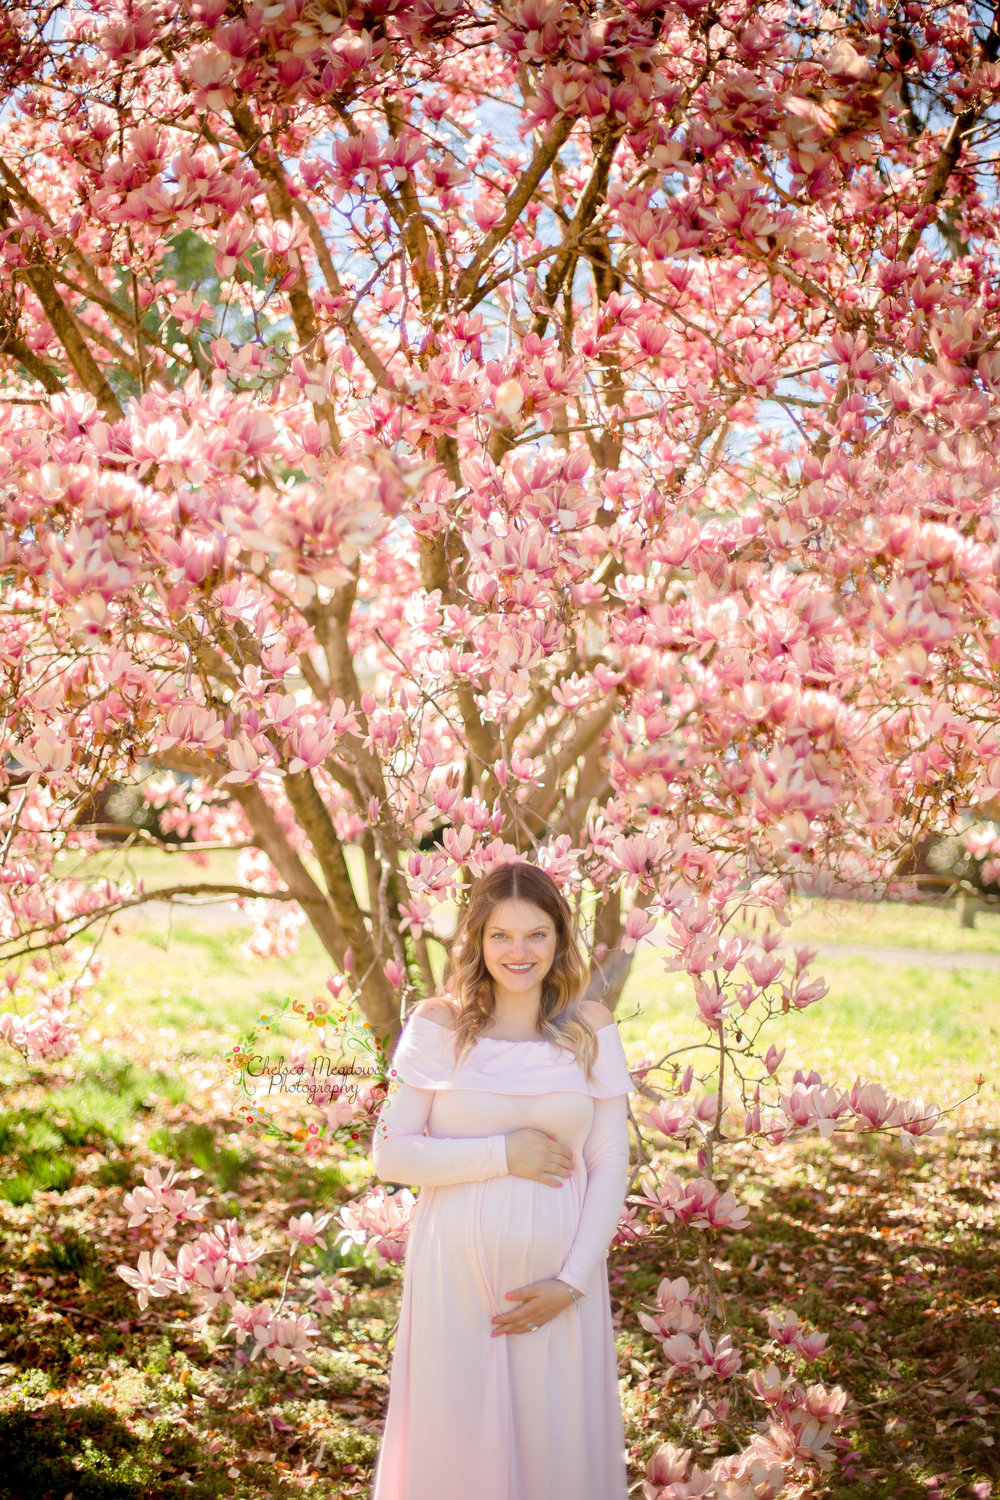 Nicole Spring Maternity Session - Nashville Maternity Photographer - Chelsea Meadows Photography (28)_edited-1.jpg